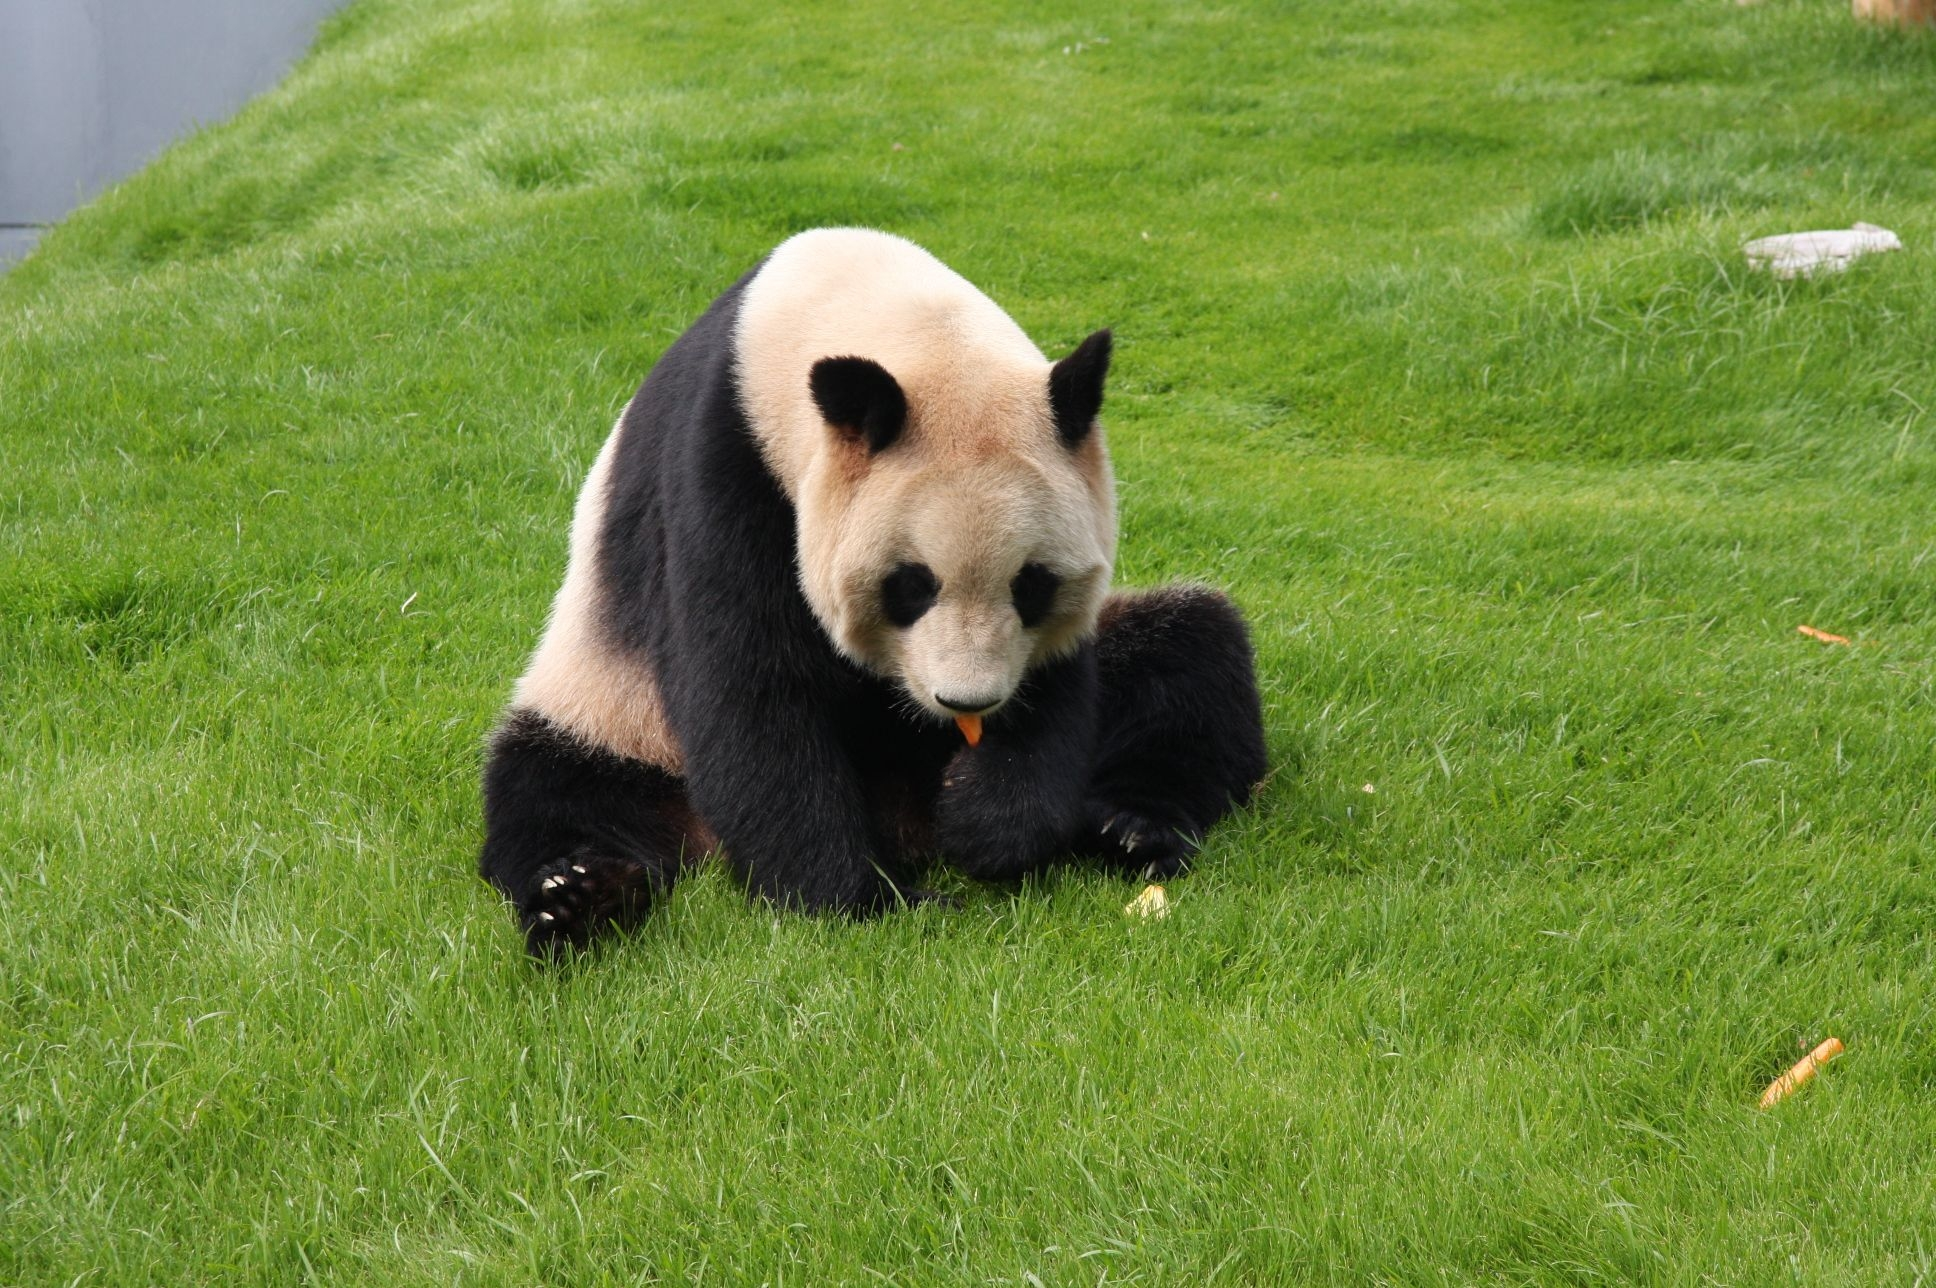 67215 download wallpaper Animals, Panda, Grass, Sit, Kid, Tot screensavers and pictures for free